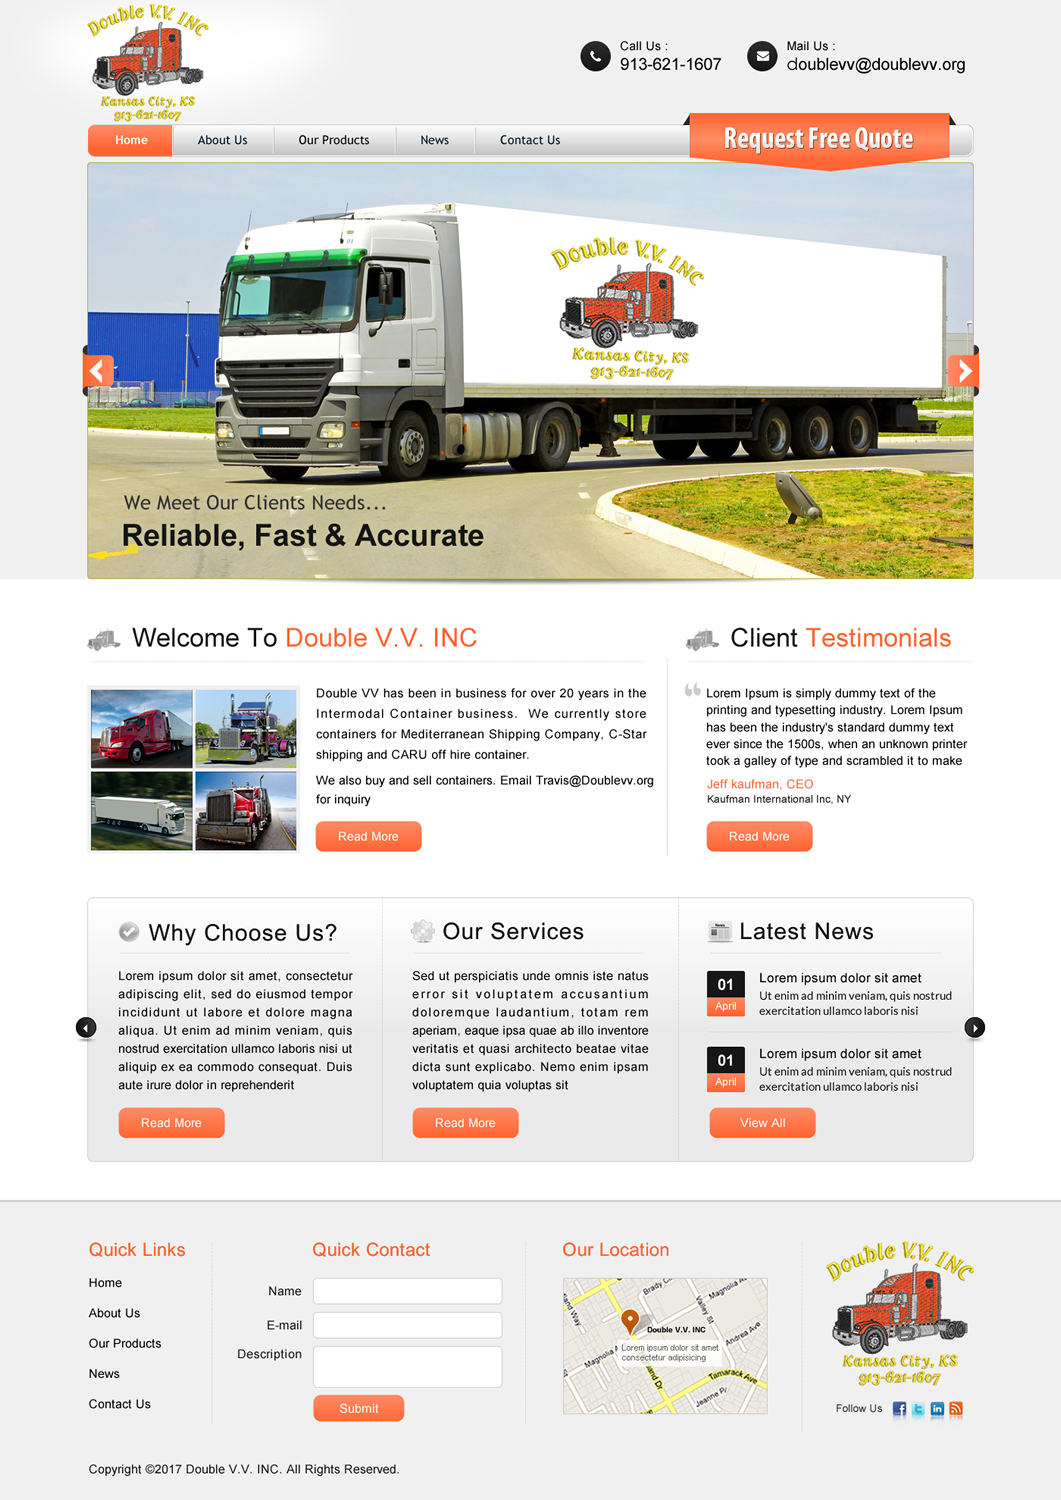 Masculine, Upmarket, Trucking Company Web Design for